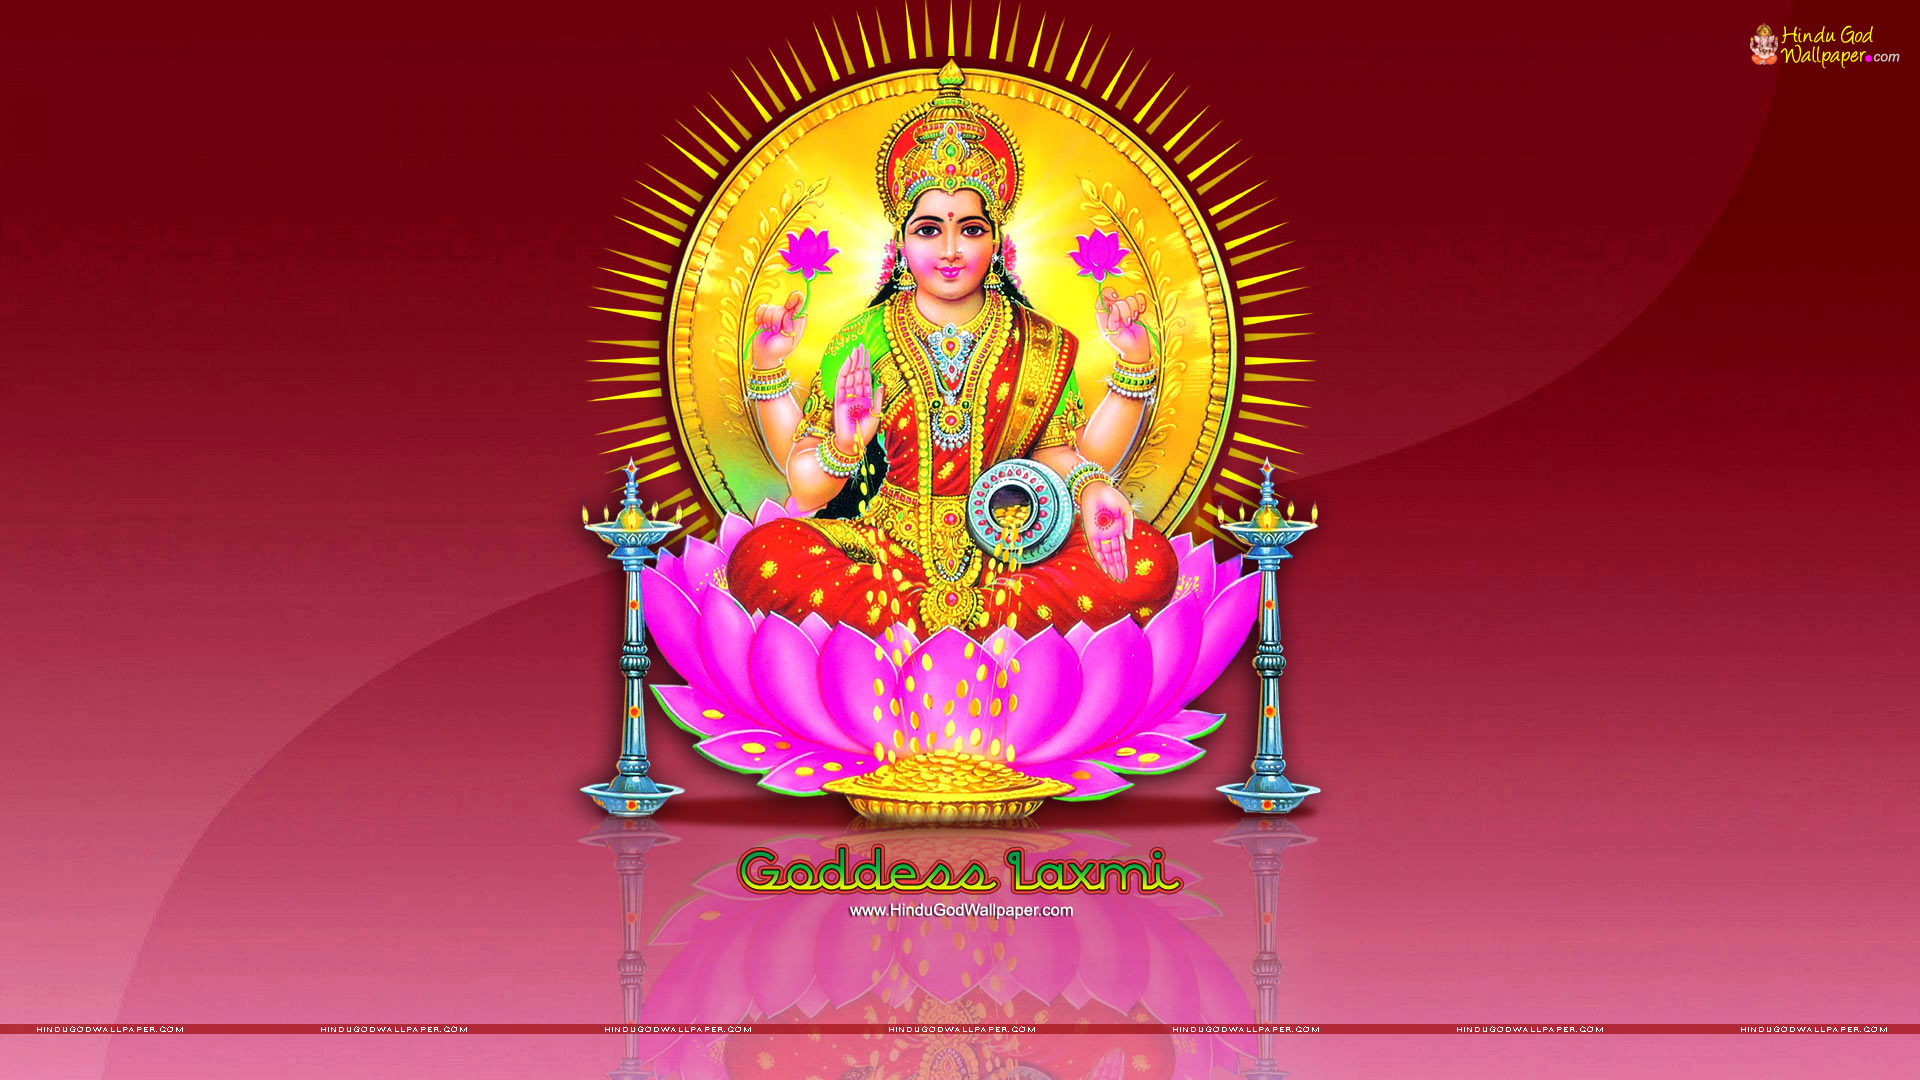 Goddess Laxmi Hd Wallpaper Full Size High Resolution Download